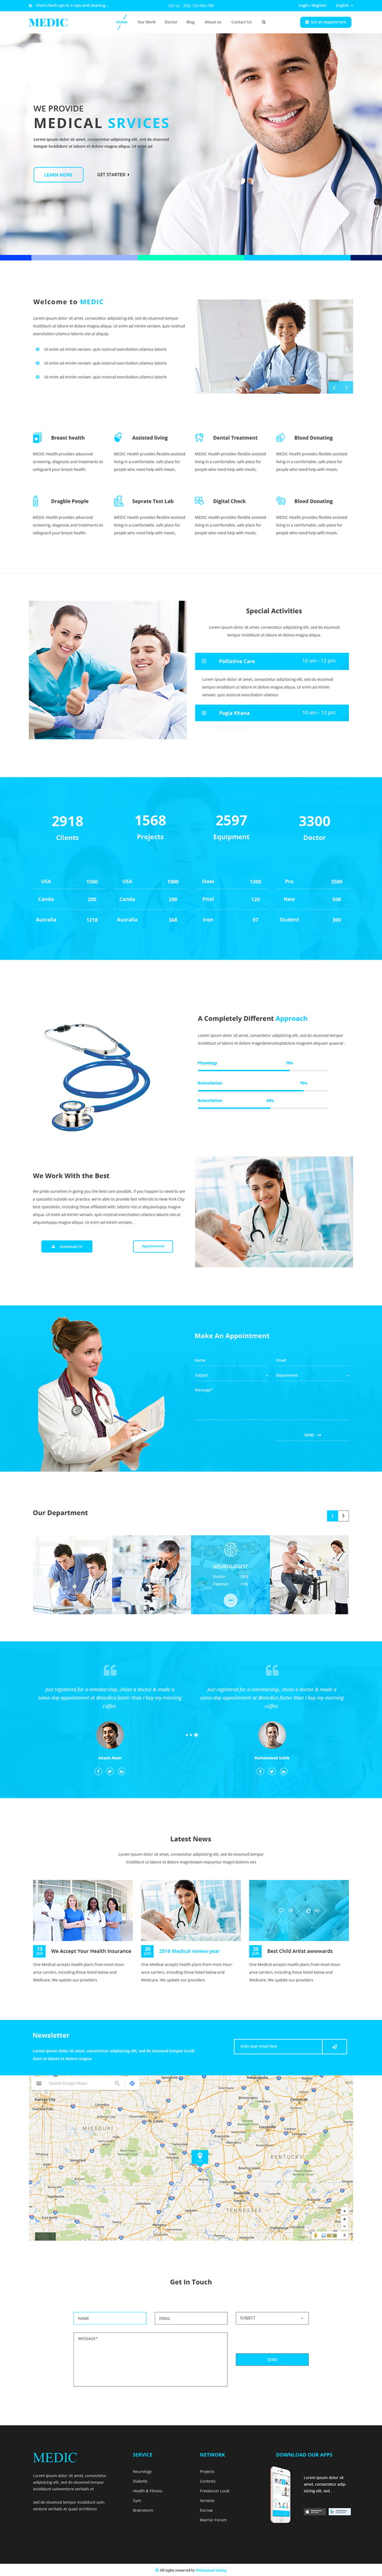 Free Medical Website Template PSD